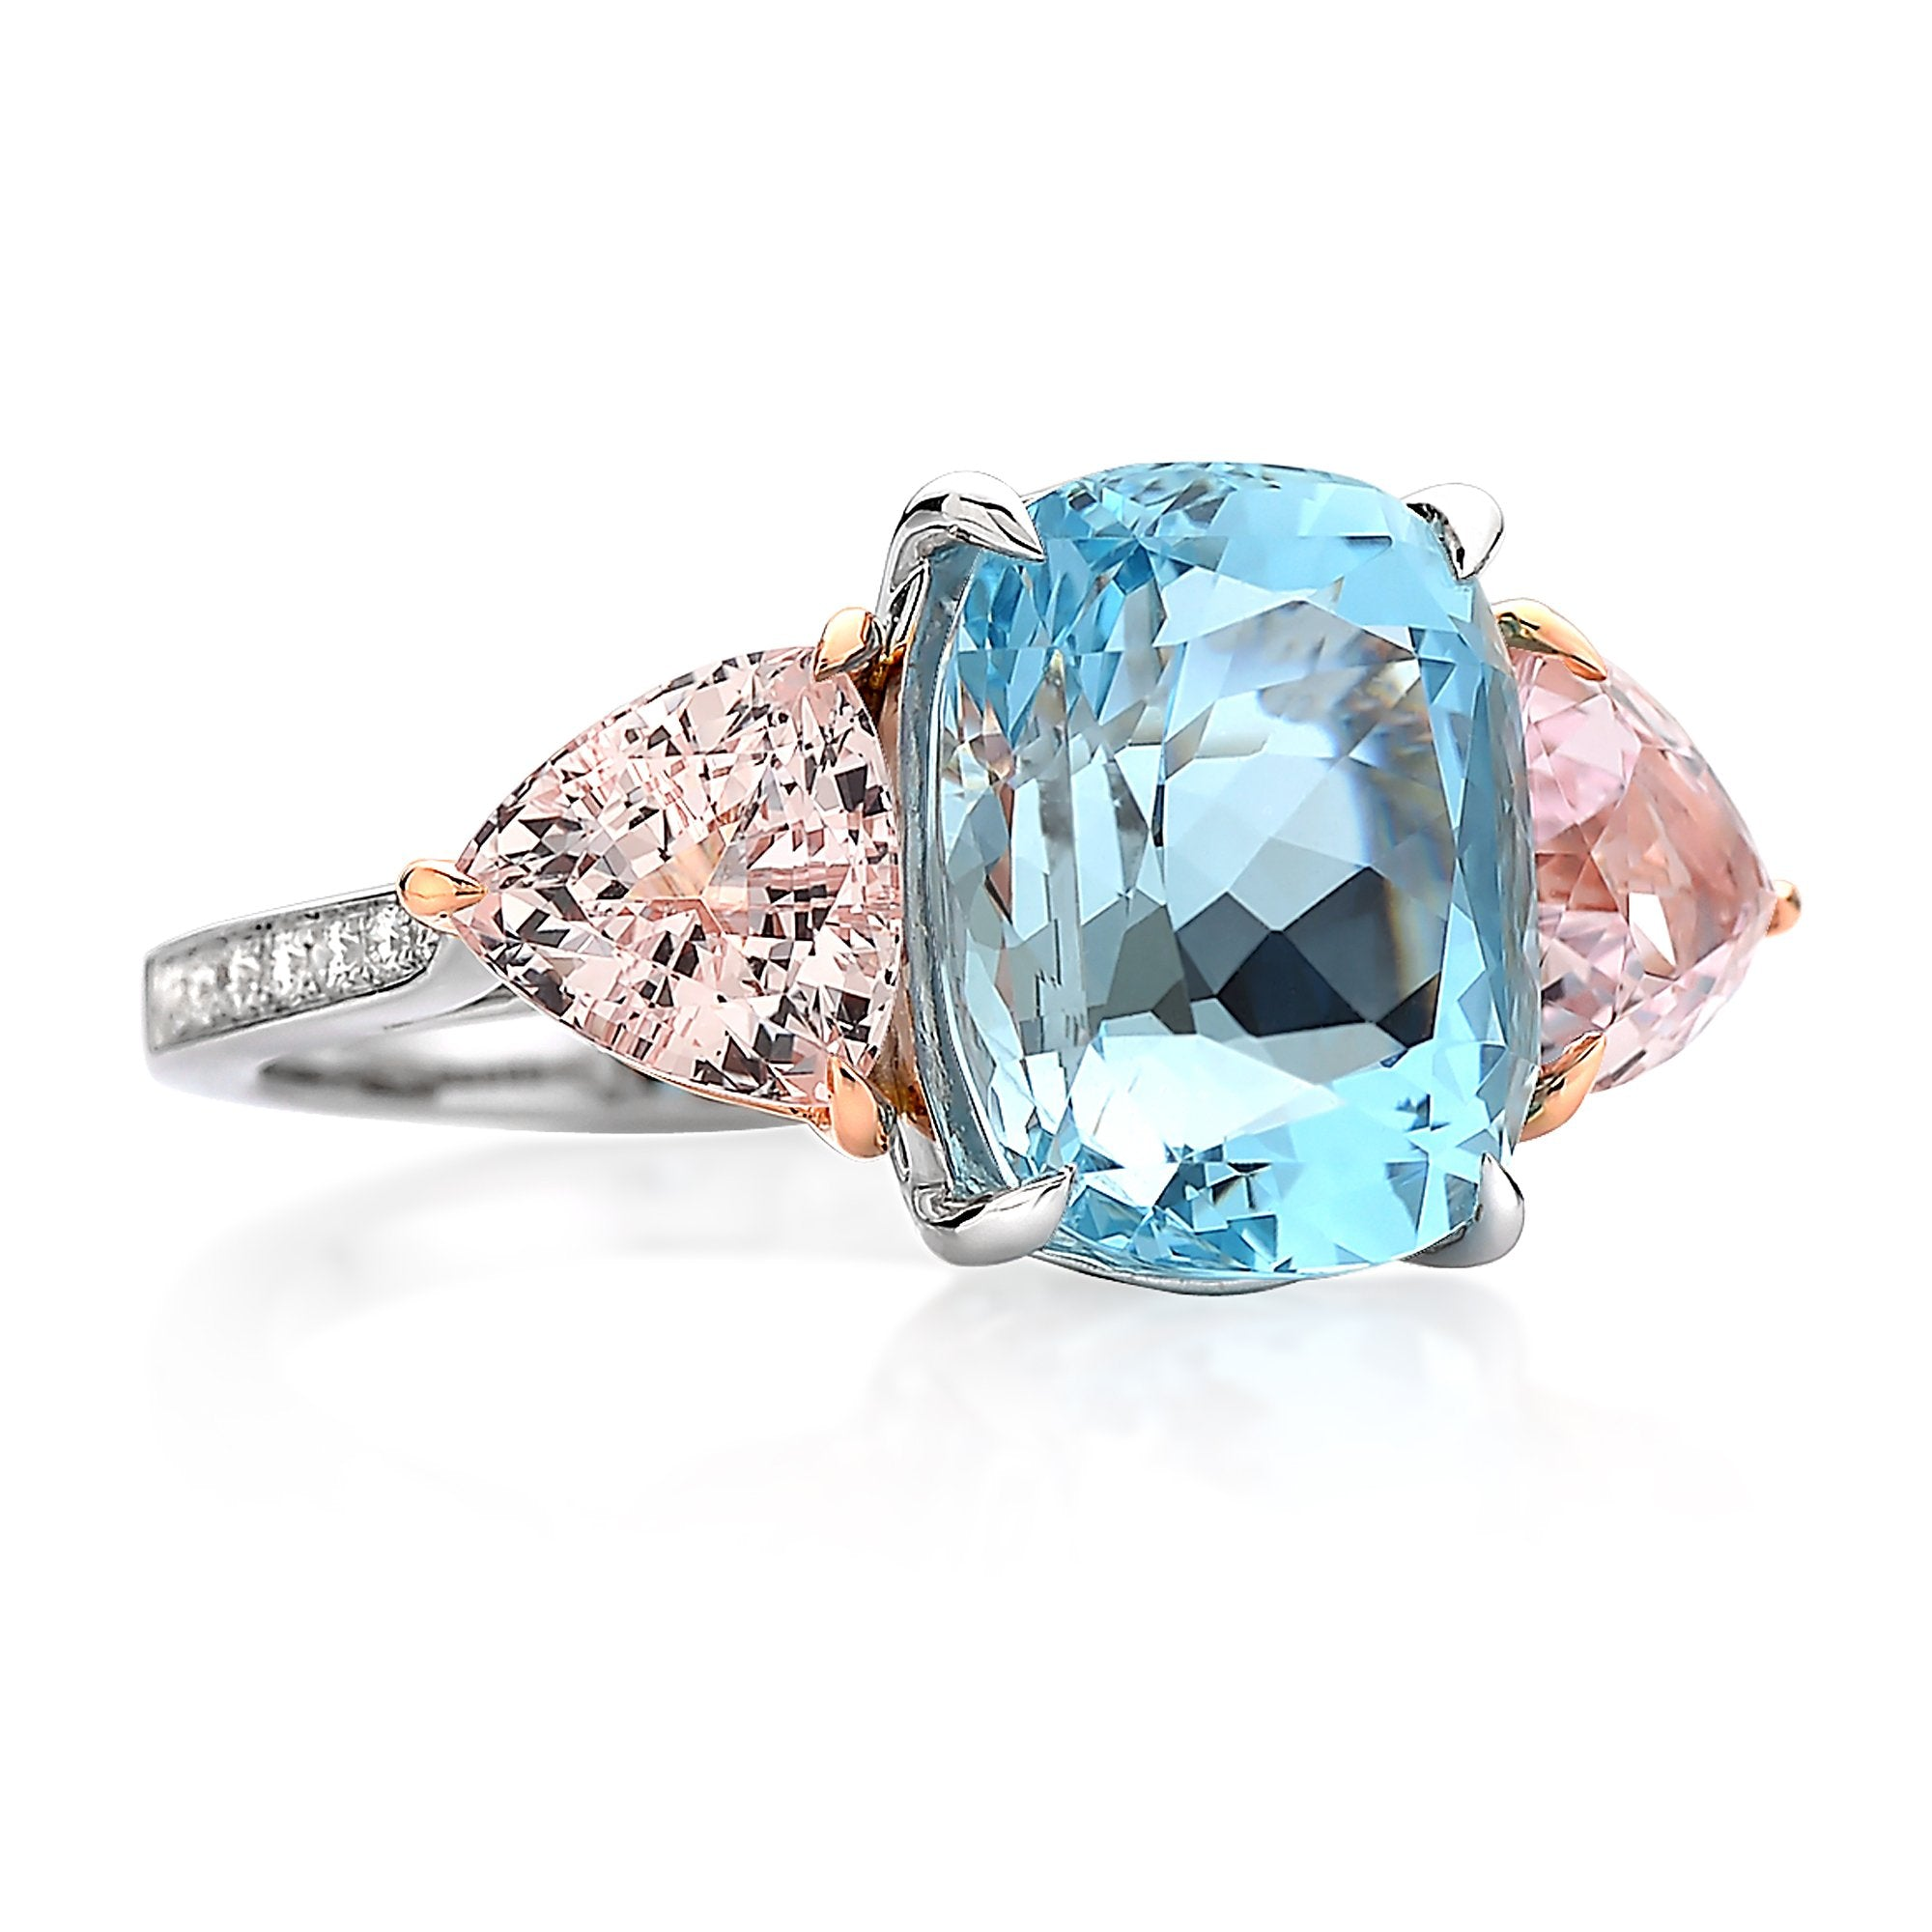 18kt Gold Aquamarine, Morganite and Diamond Ring - Paolo Costagli